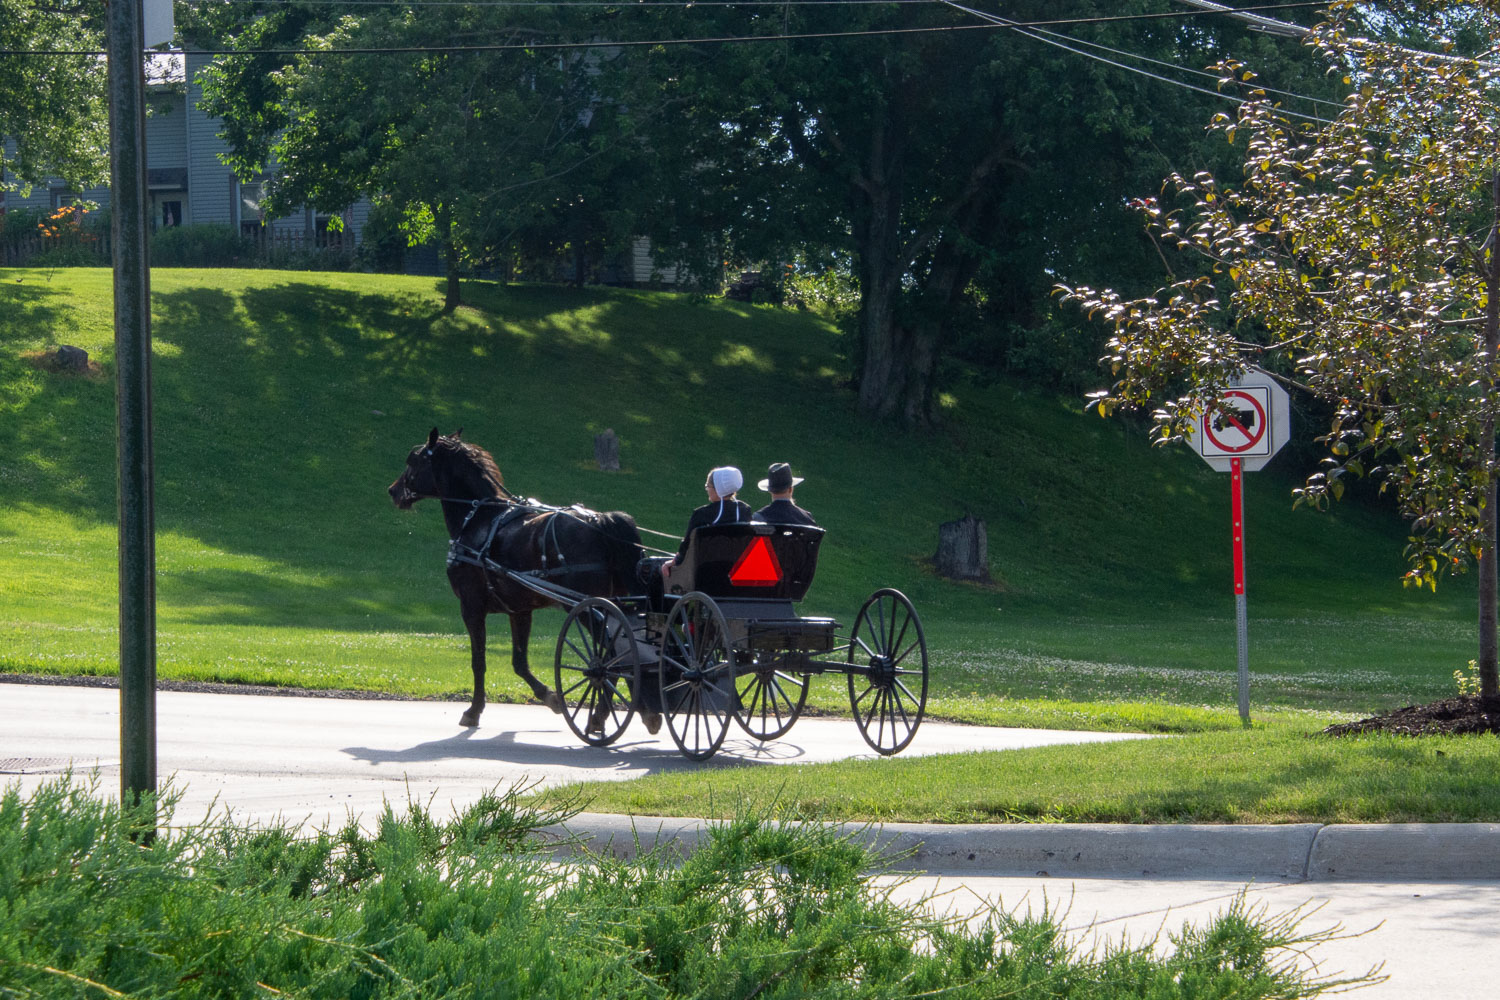 Horse and buggy in Holmes County, Ohio.